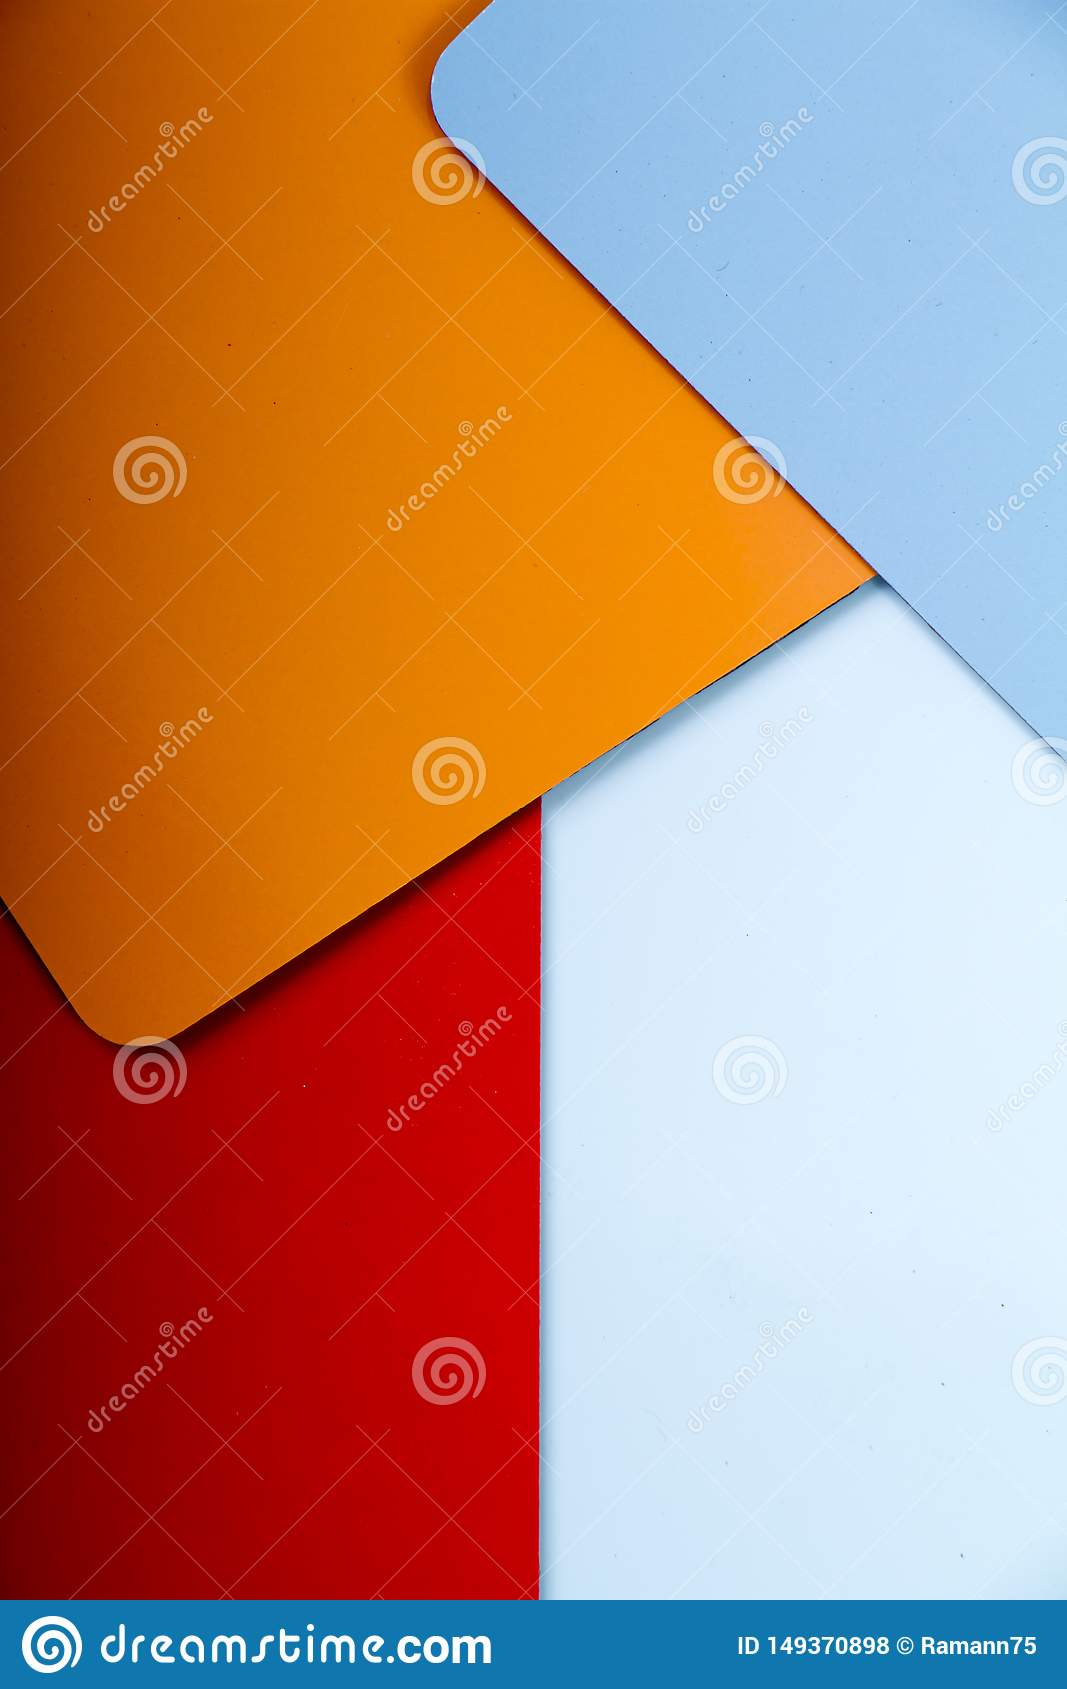 Concept of color cards on white background three colors red, orange, blue isolate on white background